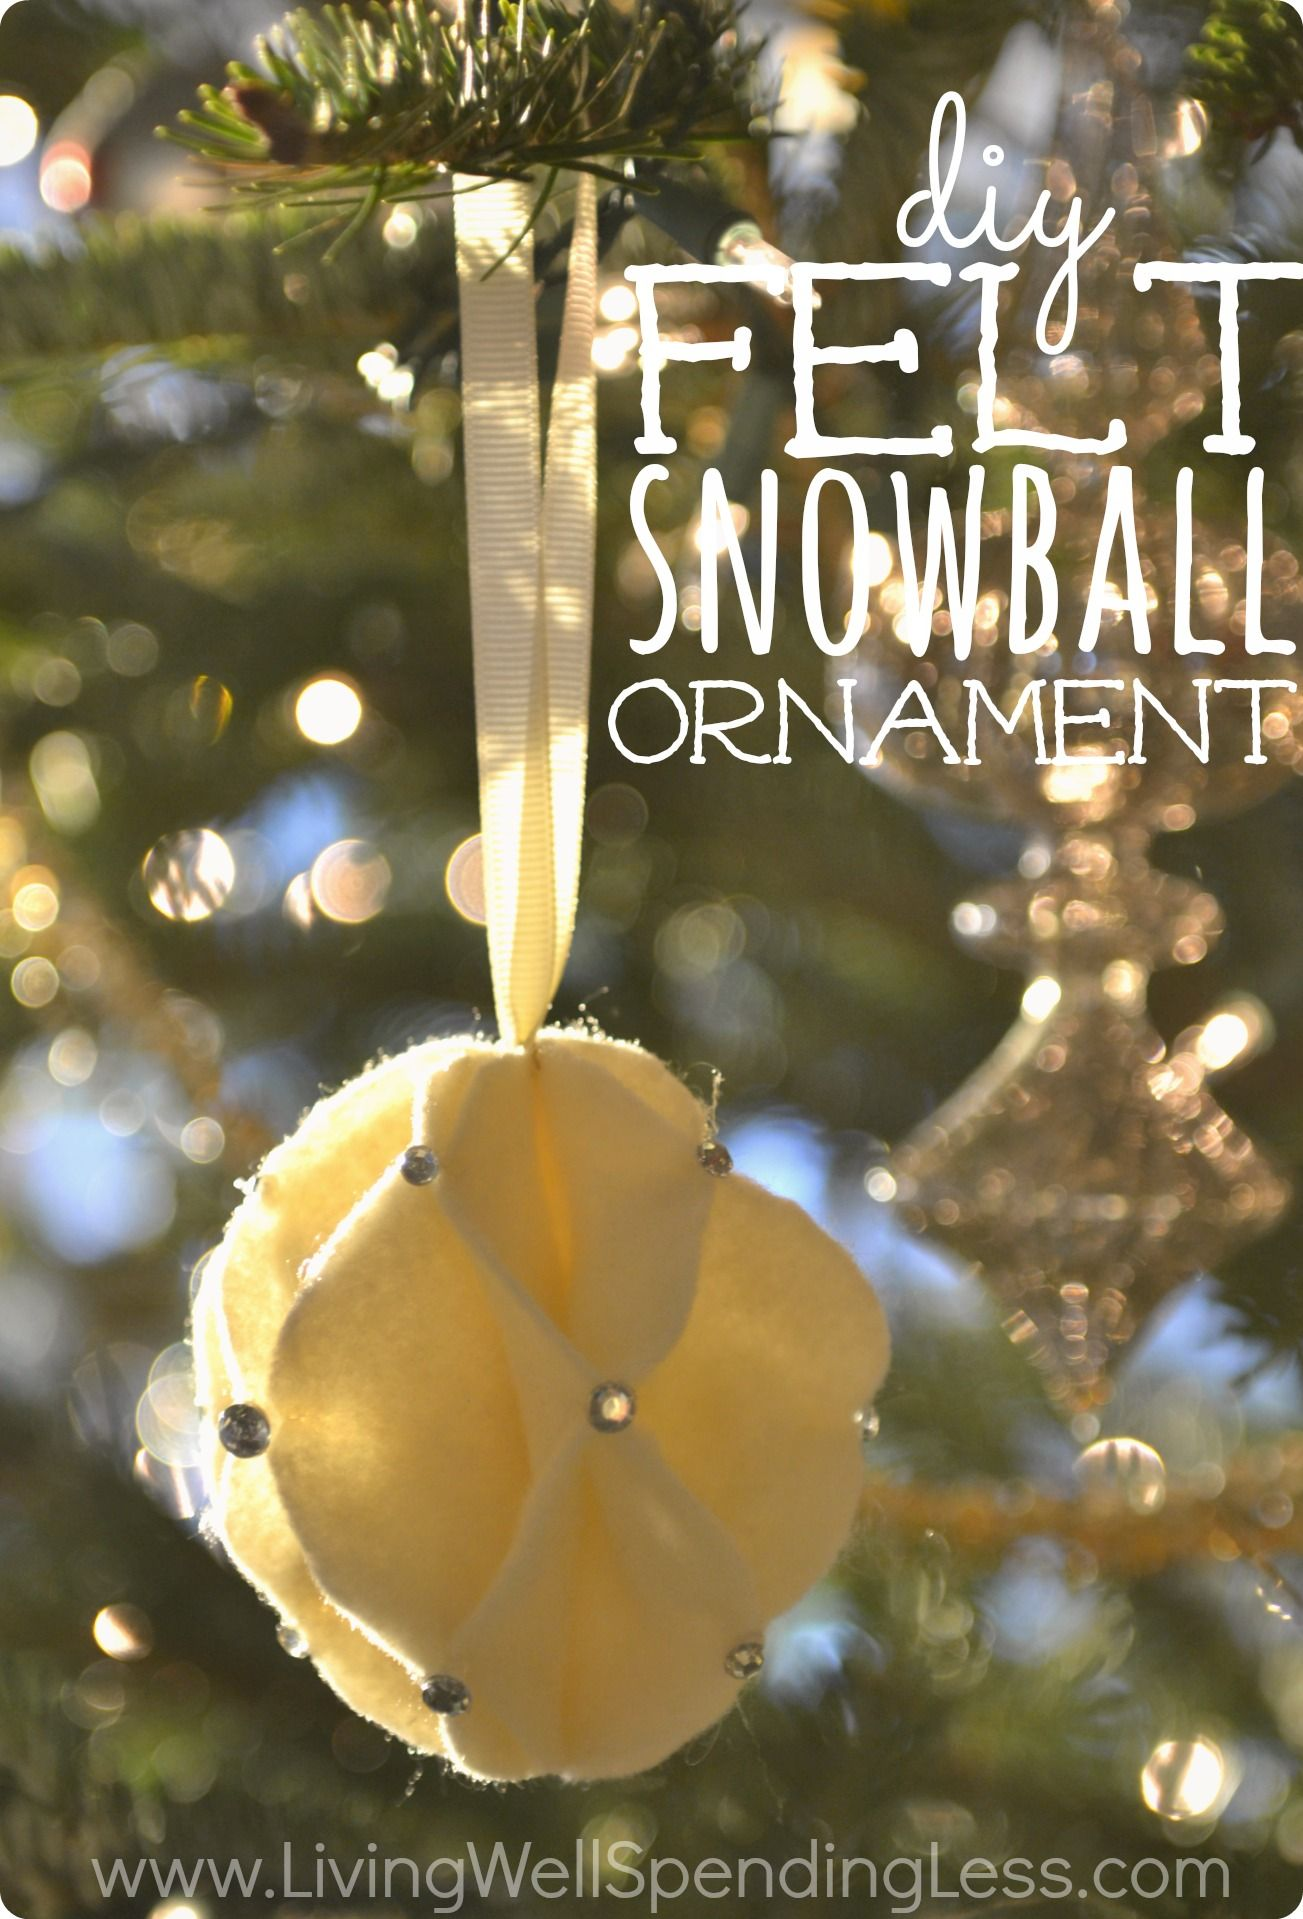 Diy Felt Snowball Ornament Great Tutorial For Making Beautiful Handmade Ornaments Out Of Felt Decorate Your Ow Snowball Ornament Felt Christmas Christmas Fun